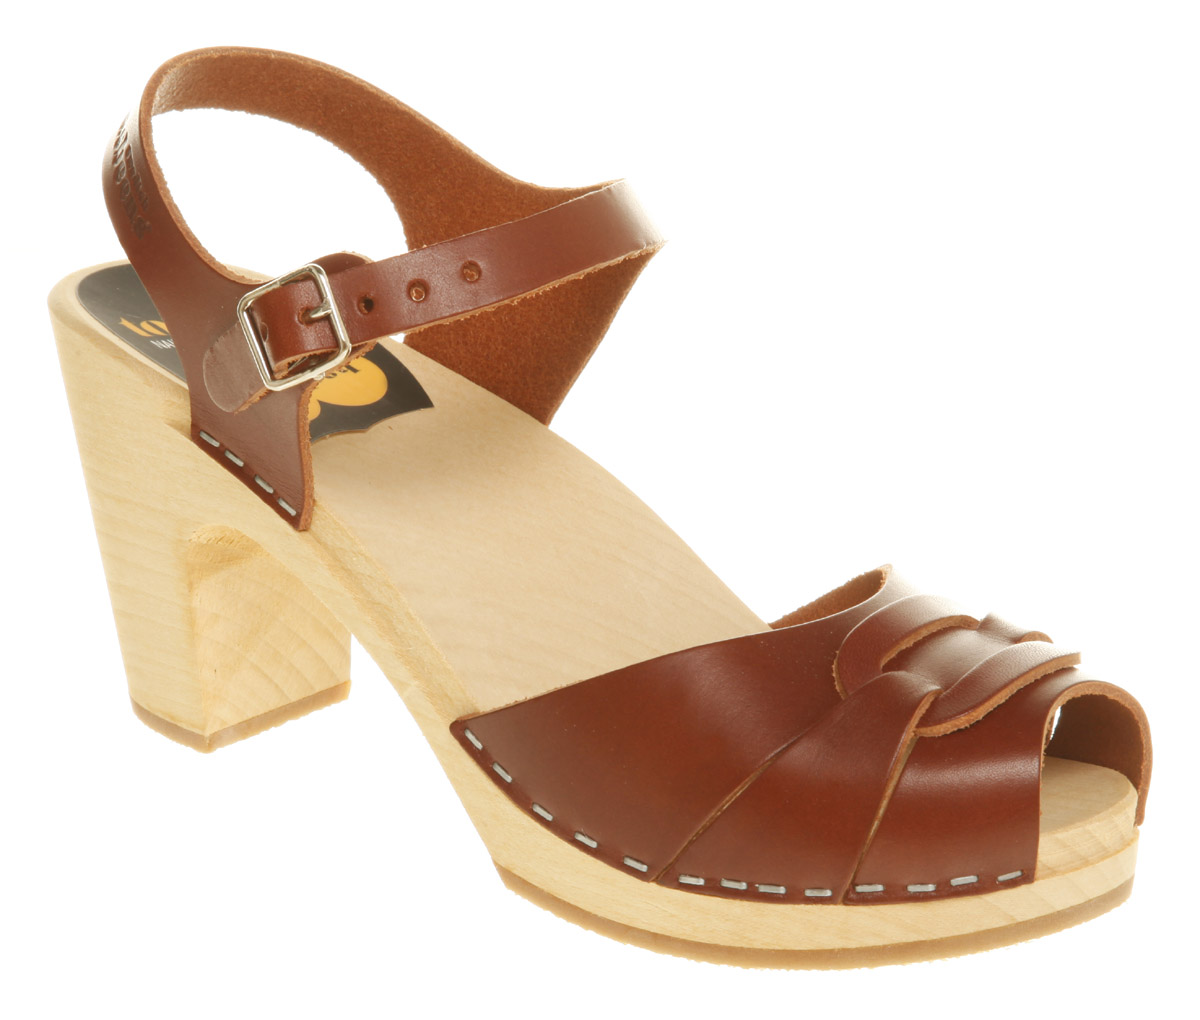 Swedish-Hasbeens-Peep-Toe-Super-High-Cognac-Heels